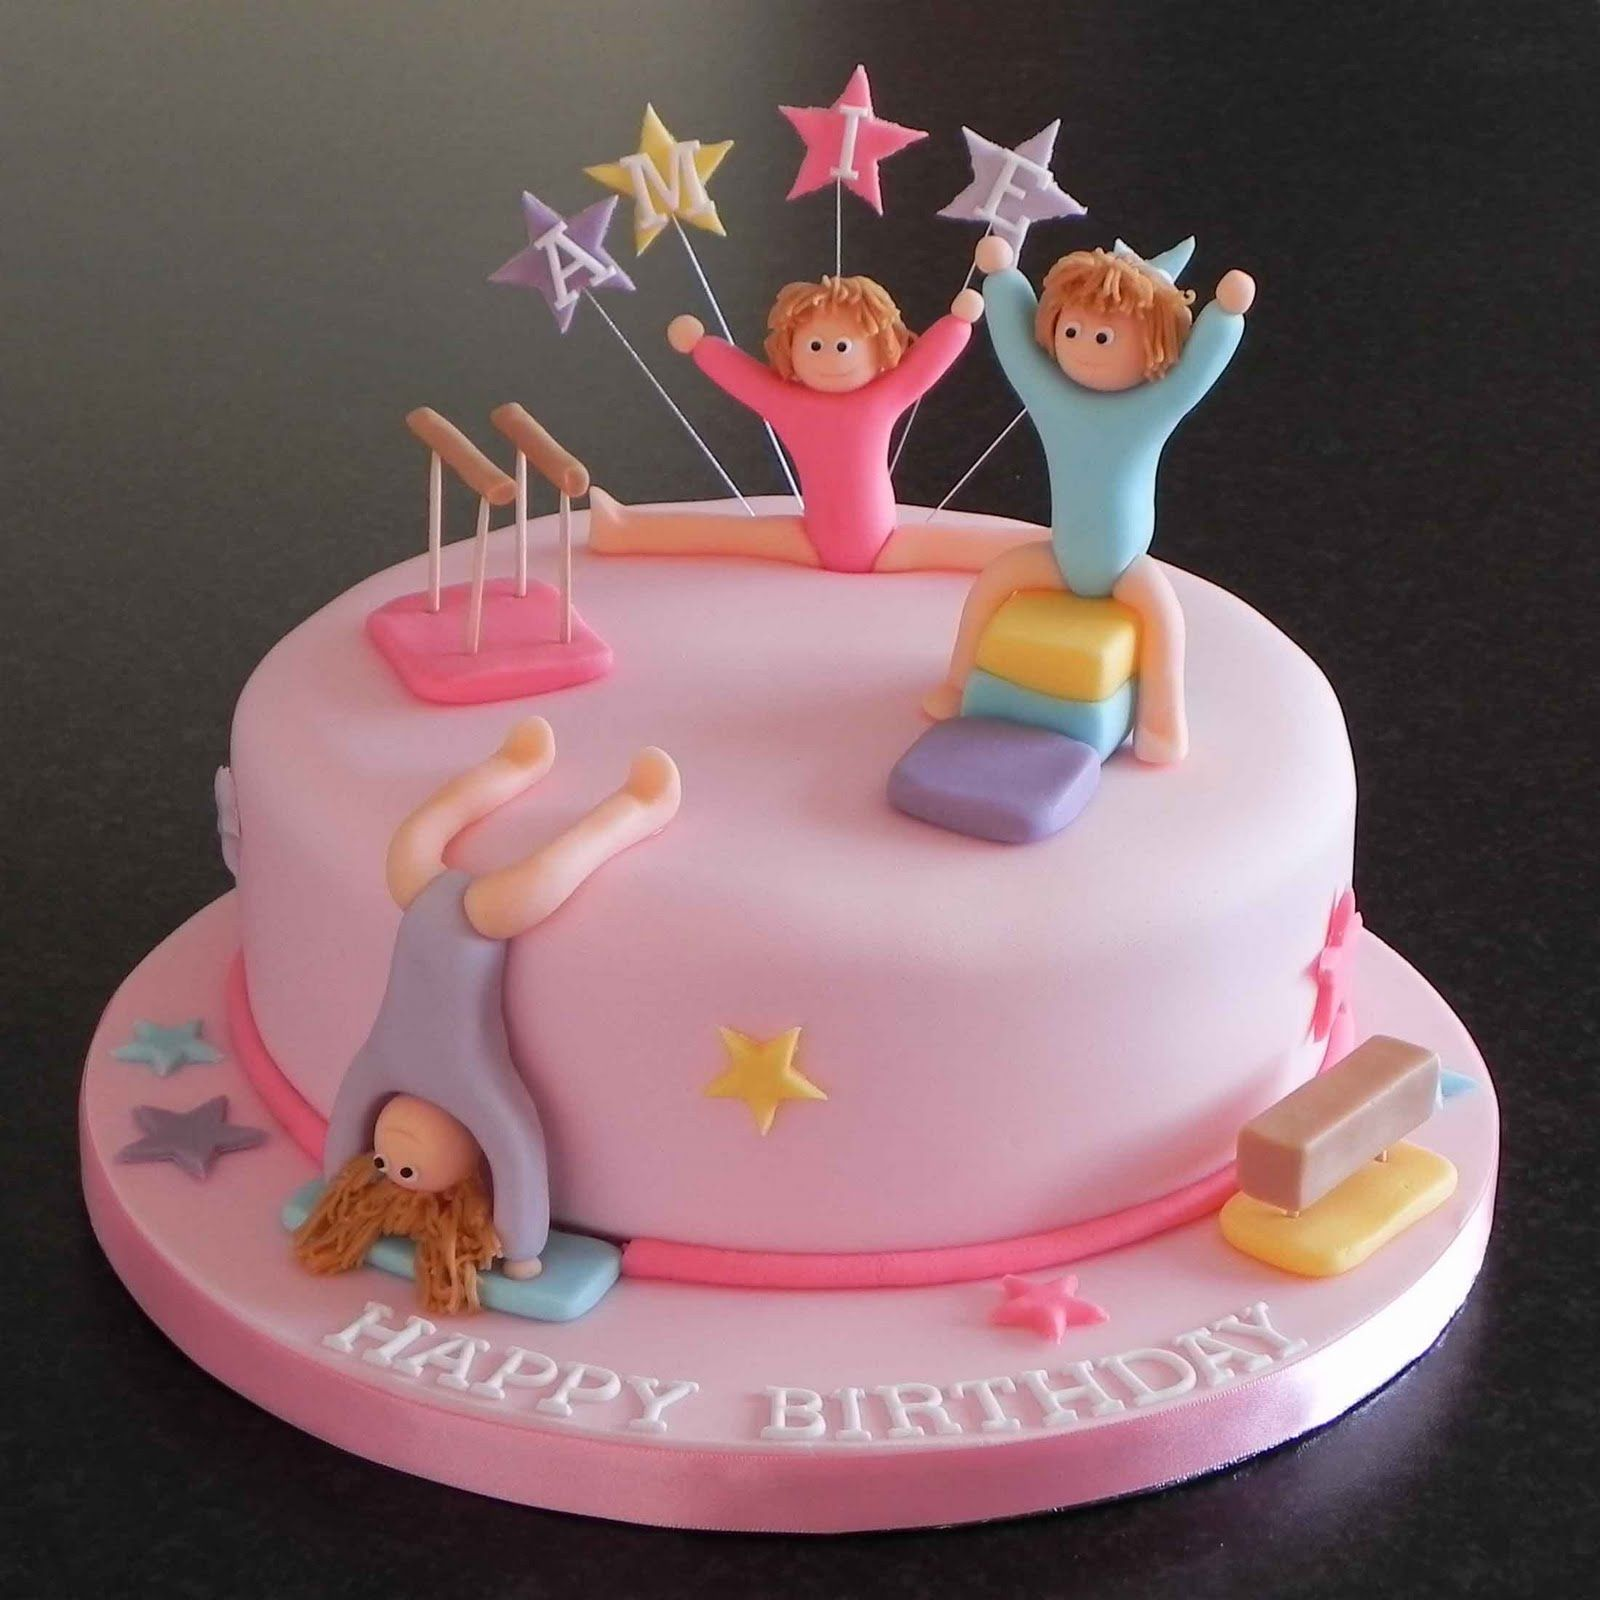 Gymnastic Themed Birthday Cake Is It Not Adorable